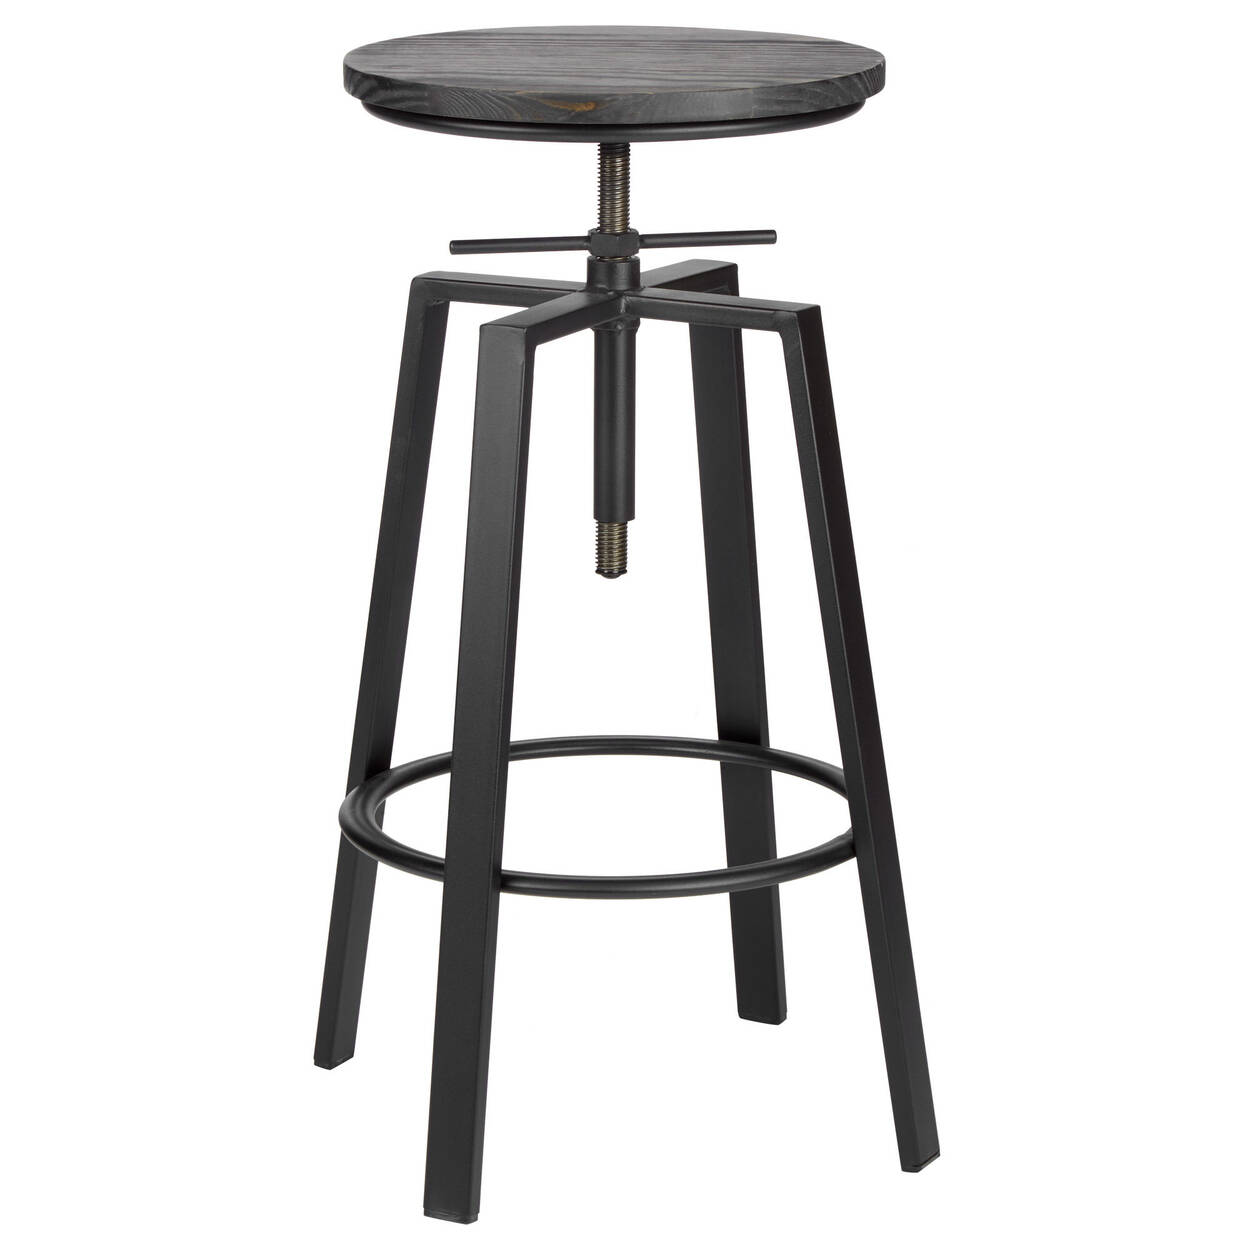 Admirable Adjustable Solid Elm Wood And Gun Metal Bar Stool Gmtry Best Dining Table And Chair Ideas Images Gmtryco